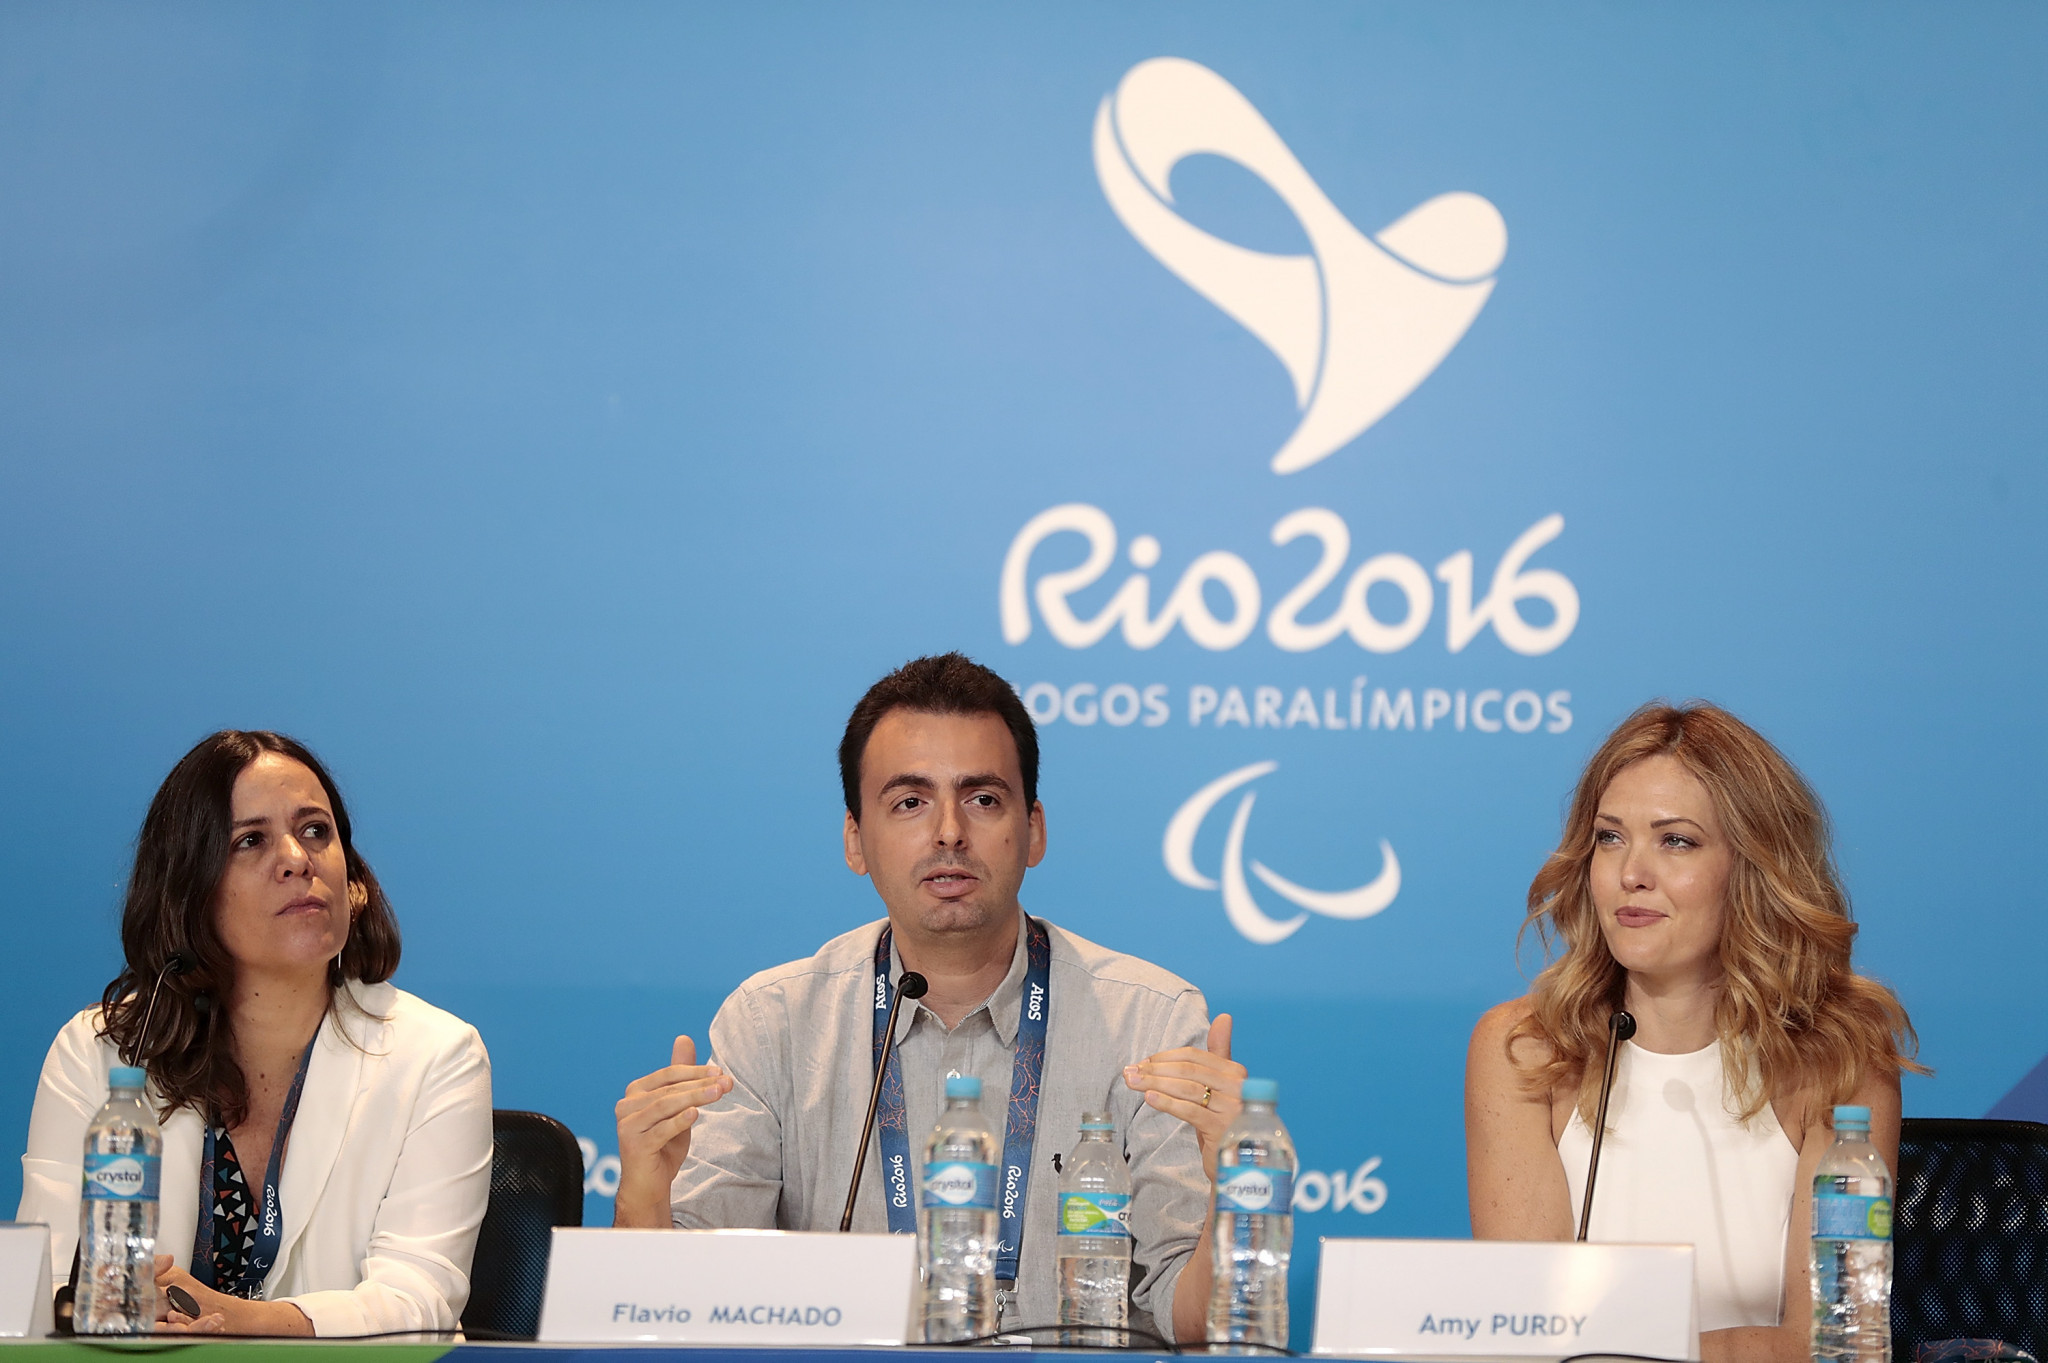 Flavio Machado, centre, served as the executive producer of the Rio 2016 Paralympic Ceremonies ©Getty Images